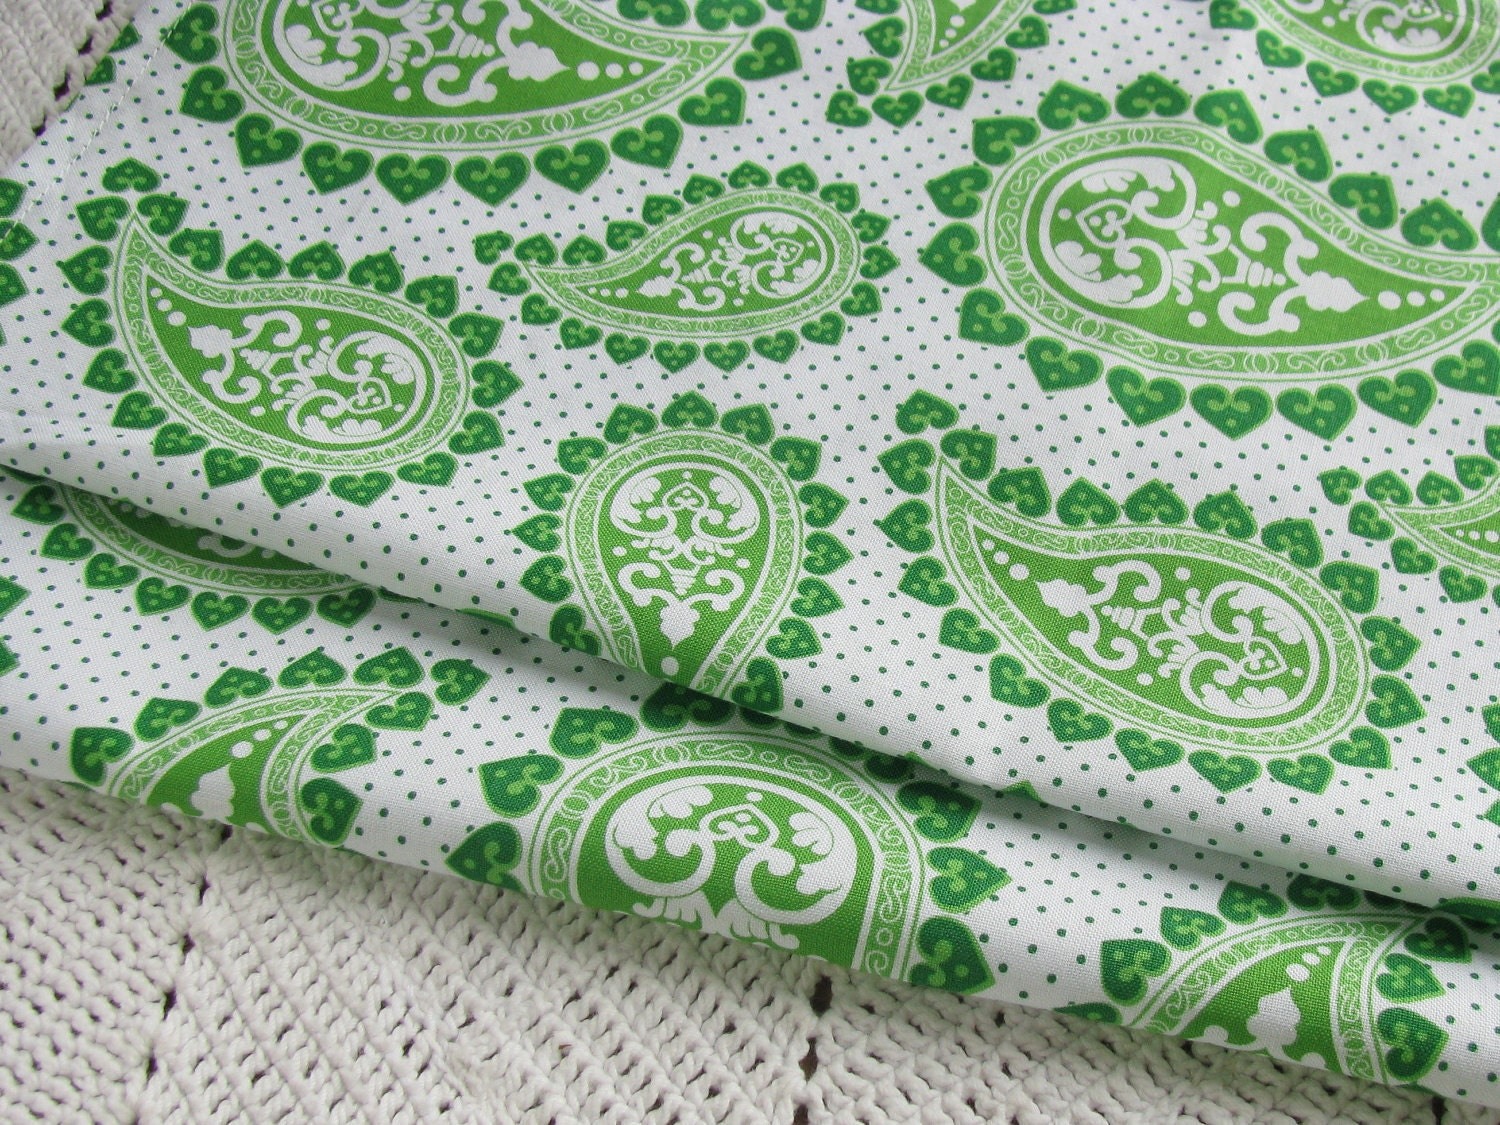 2 Large Single Layer Cloth Napkins - Kelly Green Paisley - veryverdant